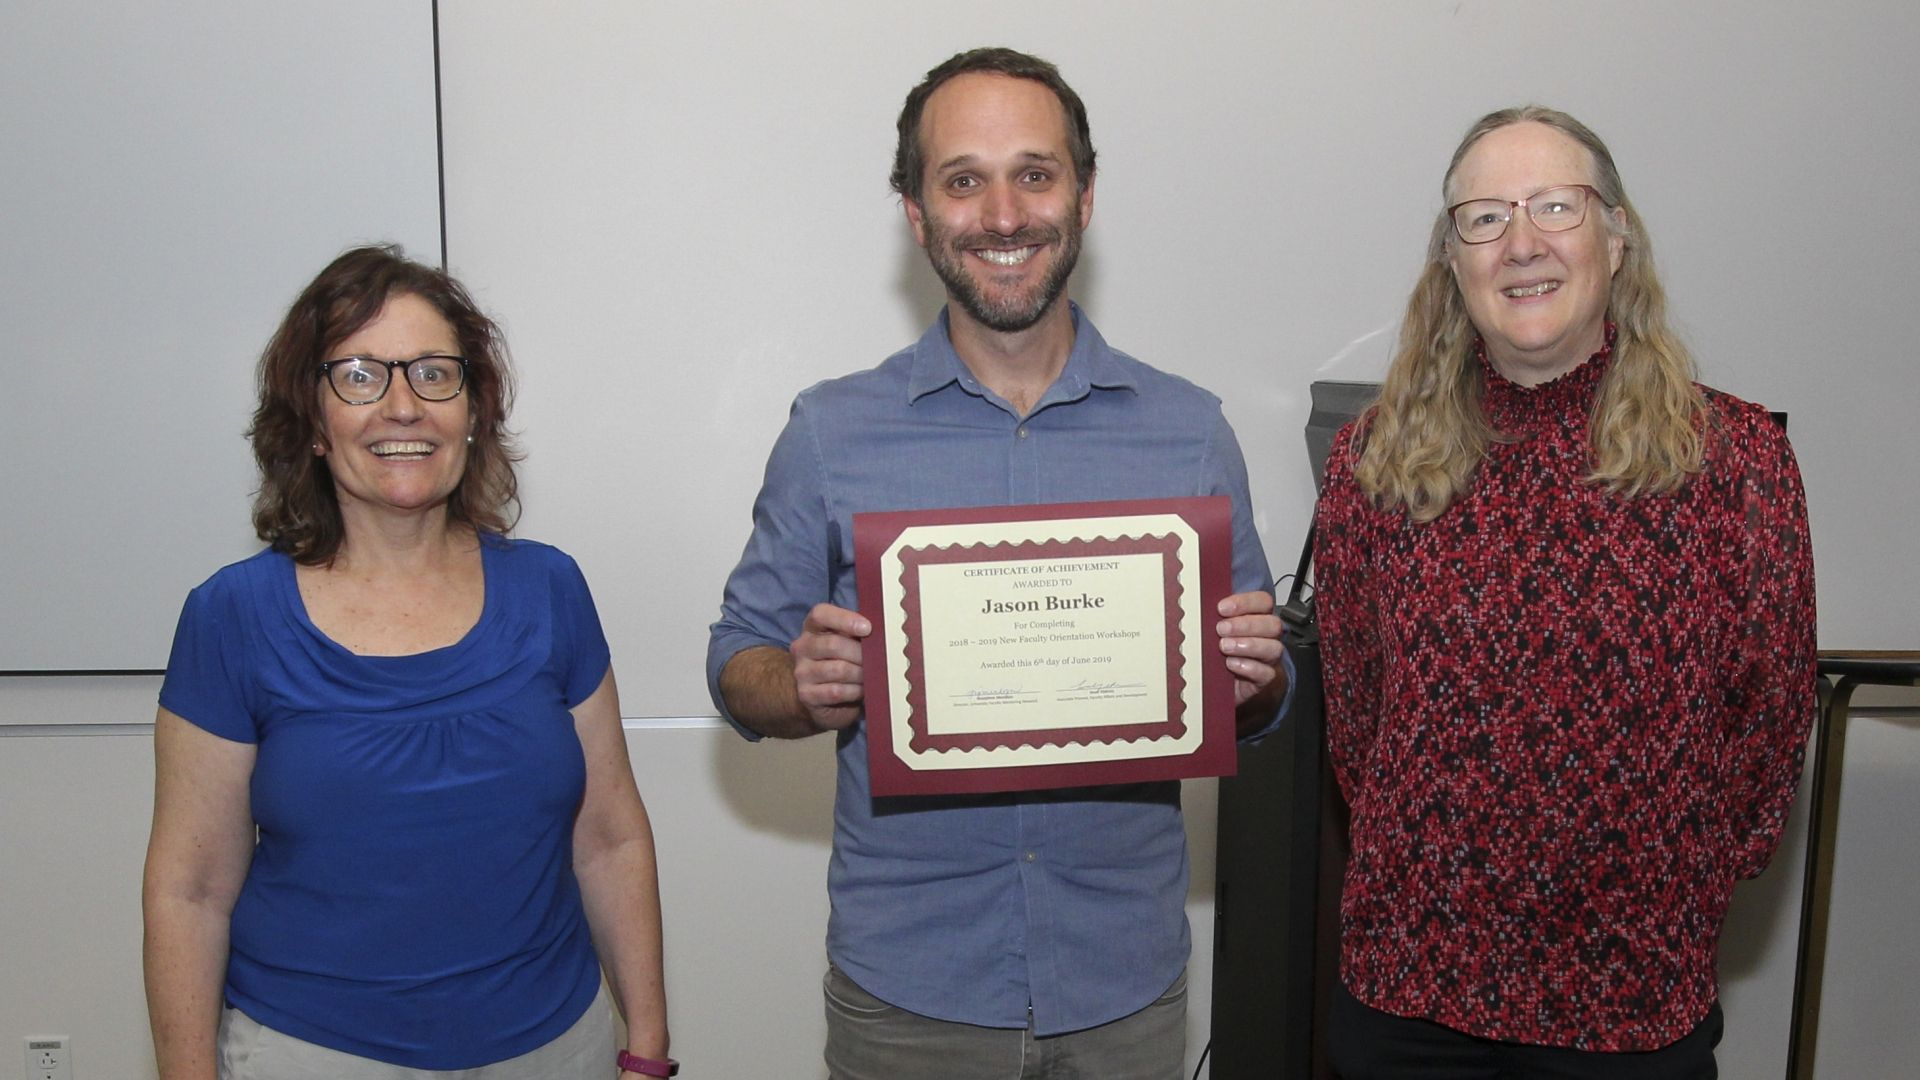 Jason Burke gets NIH grant